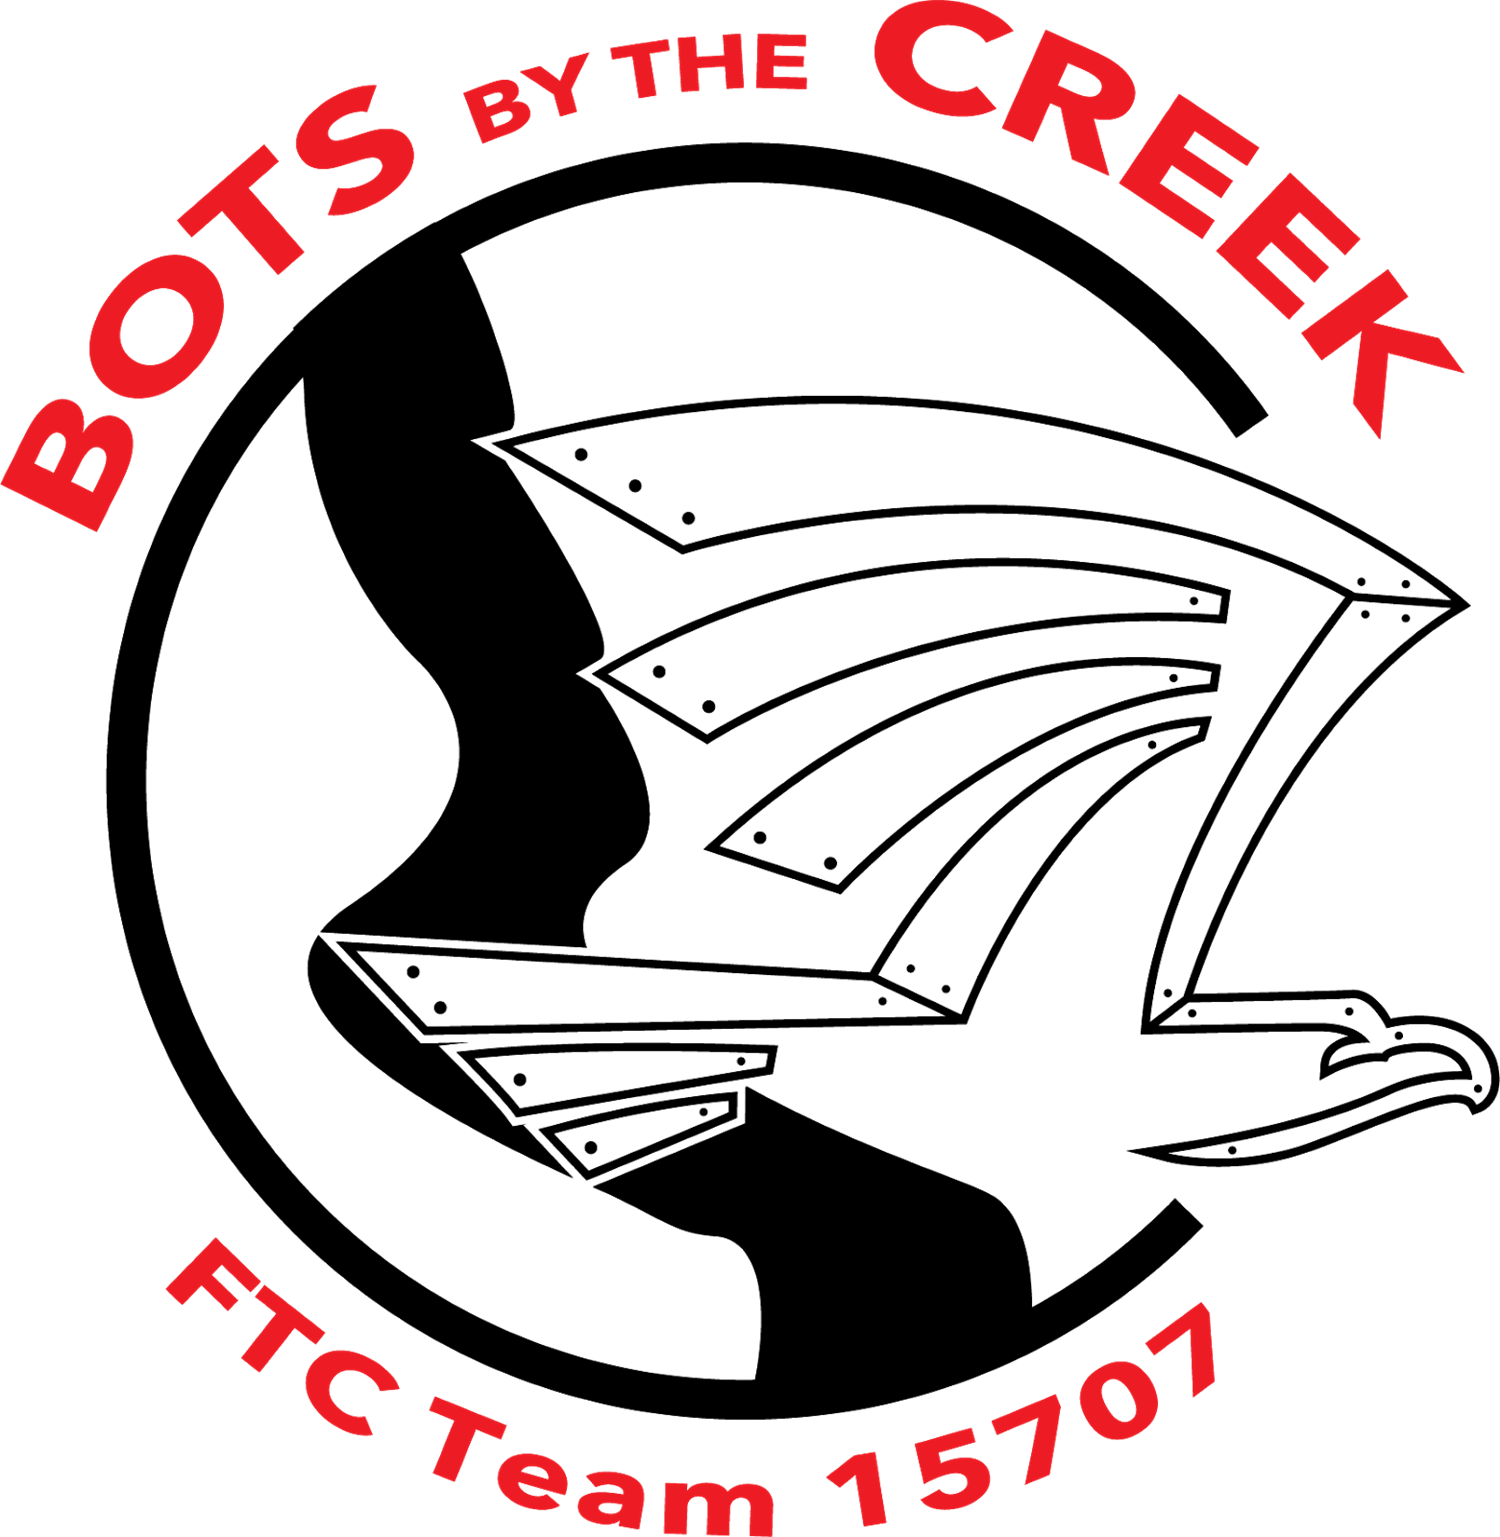 Bots By The Creek FTC Robotics